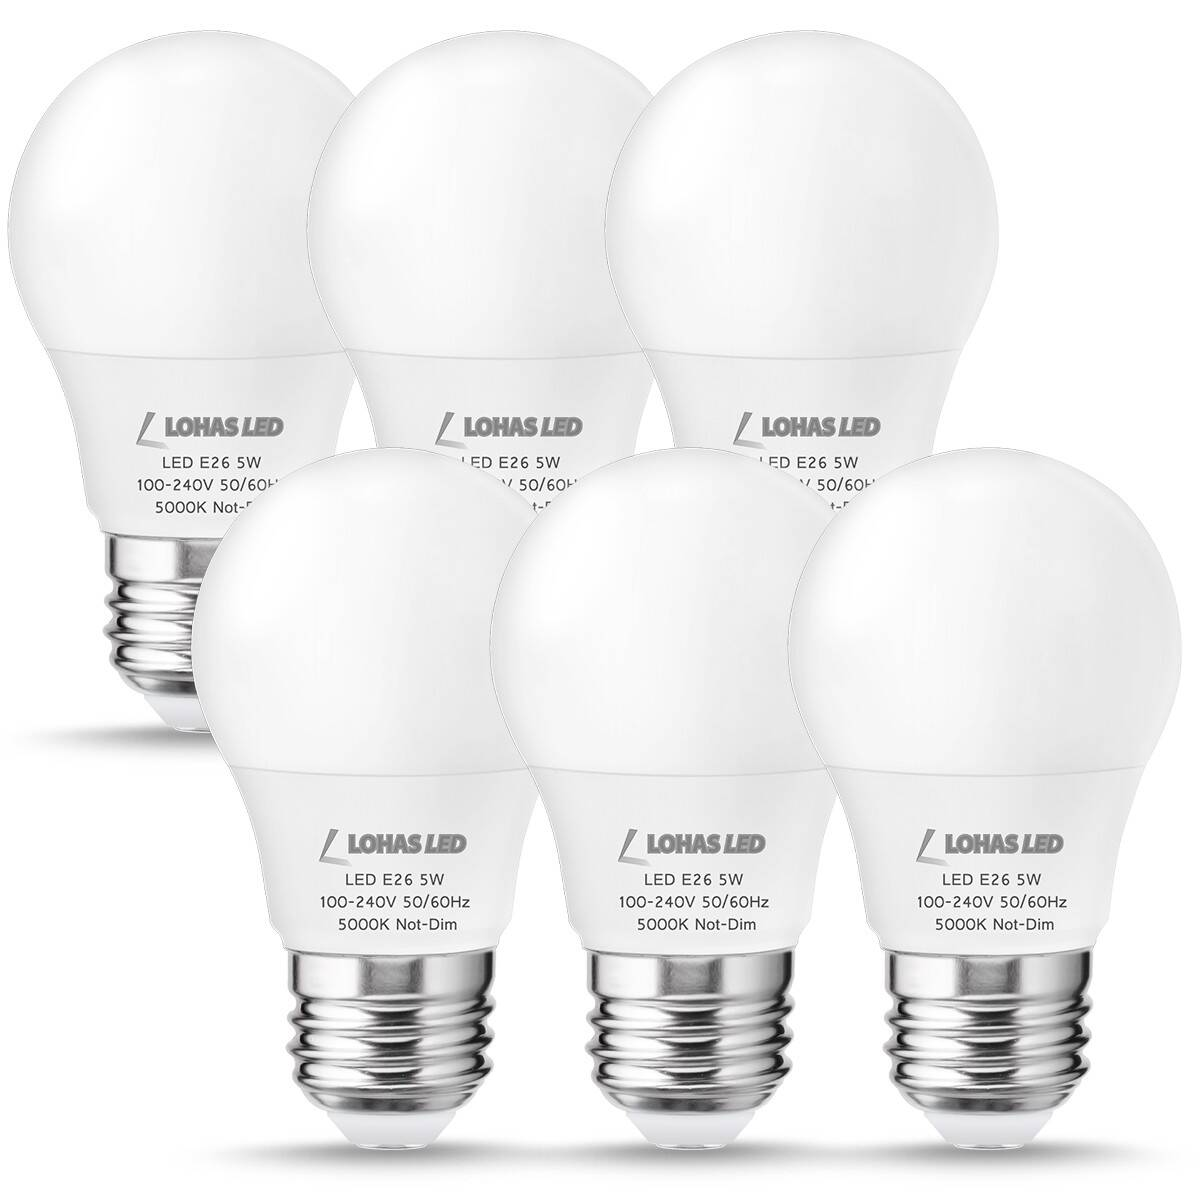 LOHAS LED Light Bulb, A15 E26 450LM 40W Equivalent(5W), Daylight 5000K, Not-Dimmable, LED Lamps for Refrigerator/Freezer Ceiling Home Lighting(6Pack)